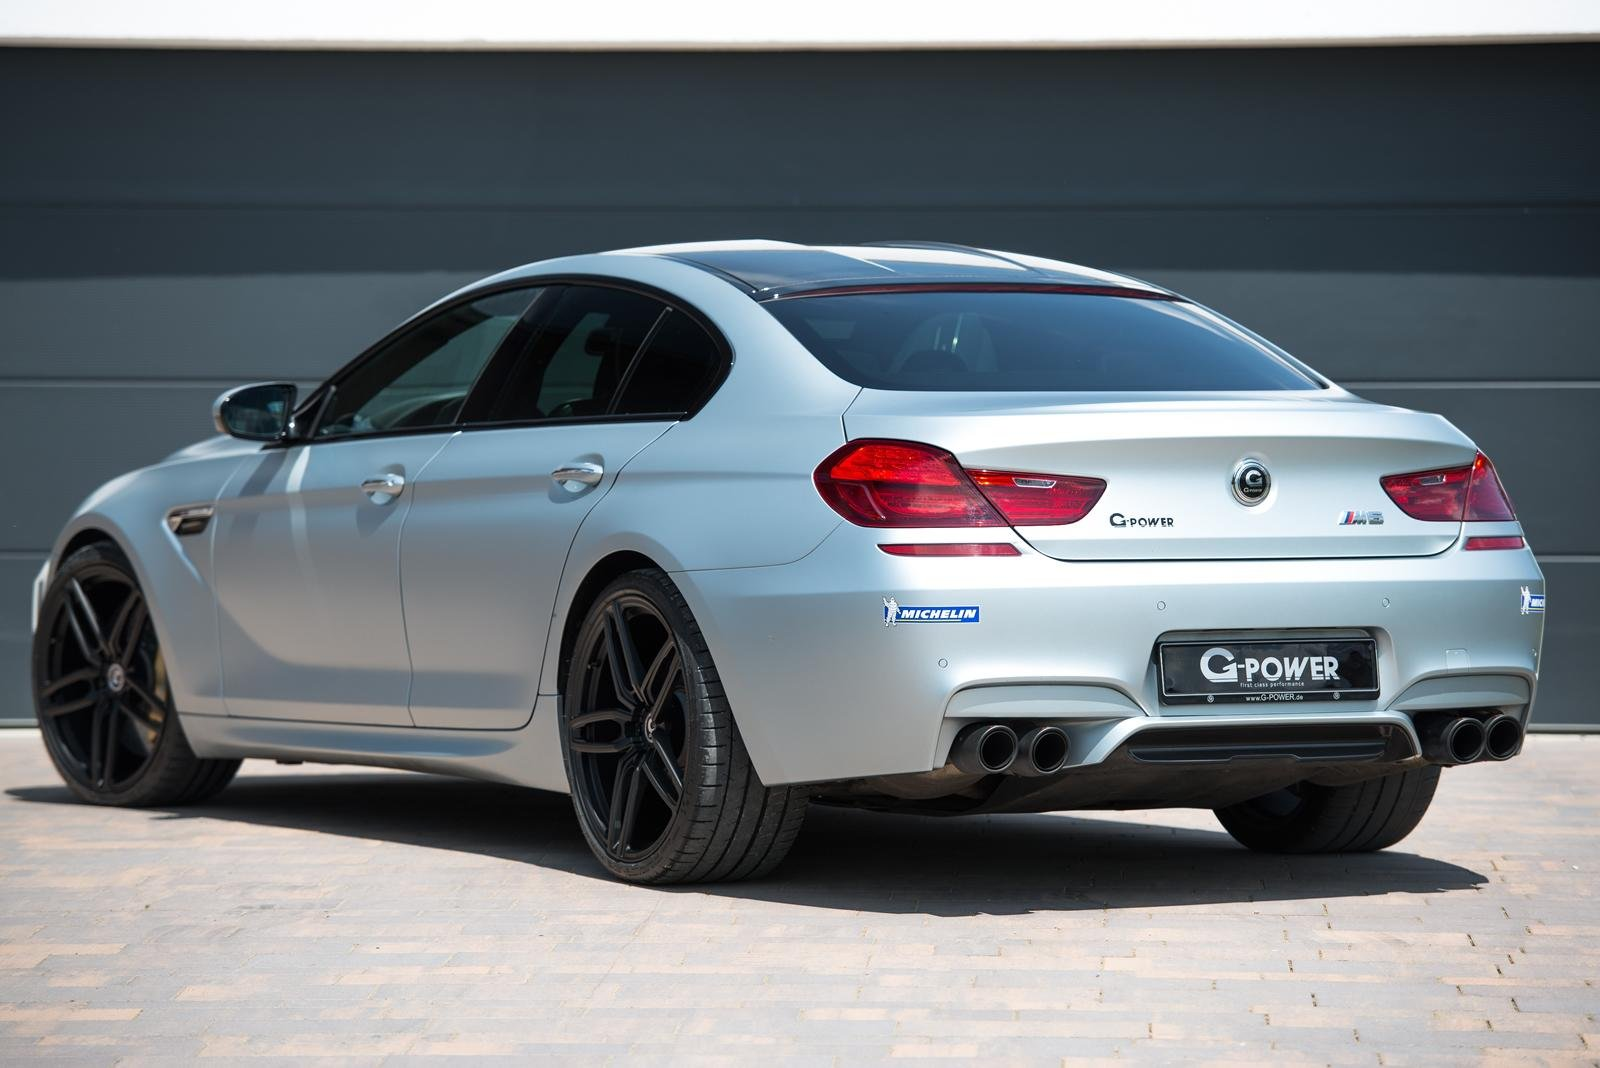 2014 g power bmw m6 gran coupe tuning cars wallpaper 1600x1068 447547 wallpaperup. Black Bedroom Furniture Sets. Home Design Ideas